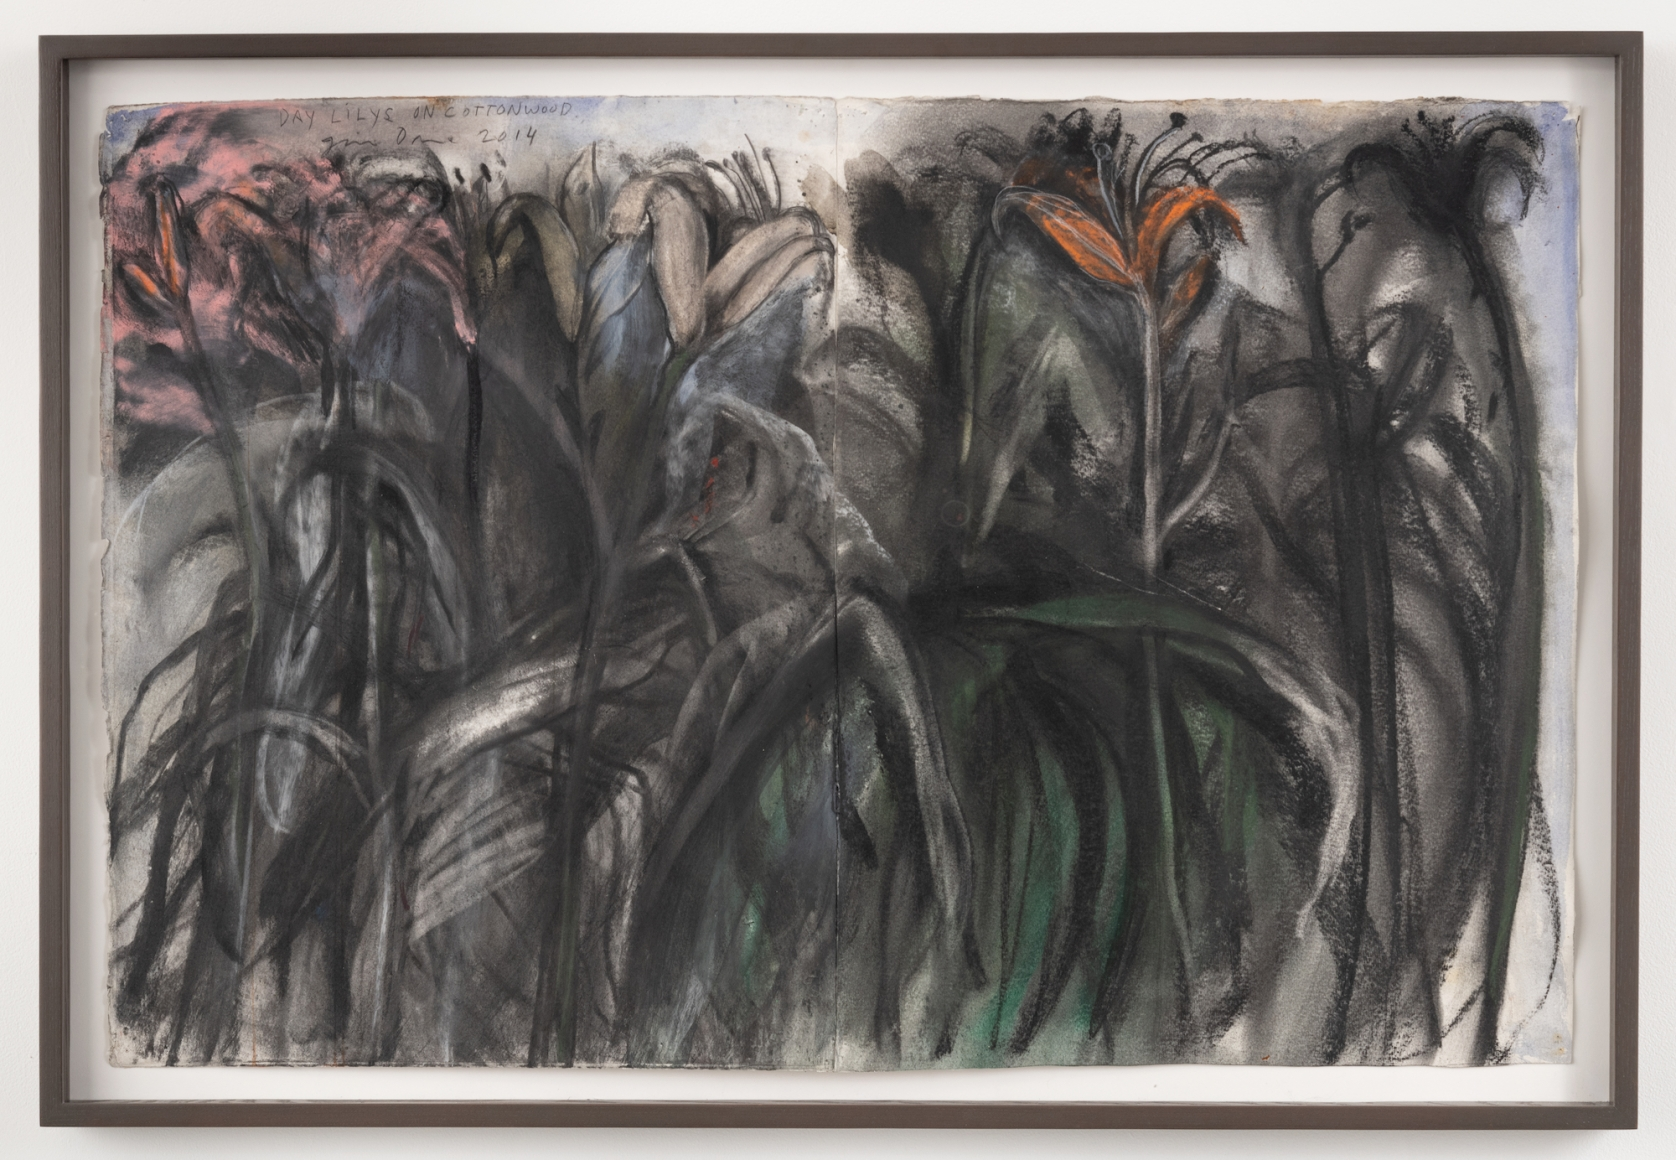 Day Lilys on Cottonwood, 2014, Charcoal, pastel and watercolor on paper